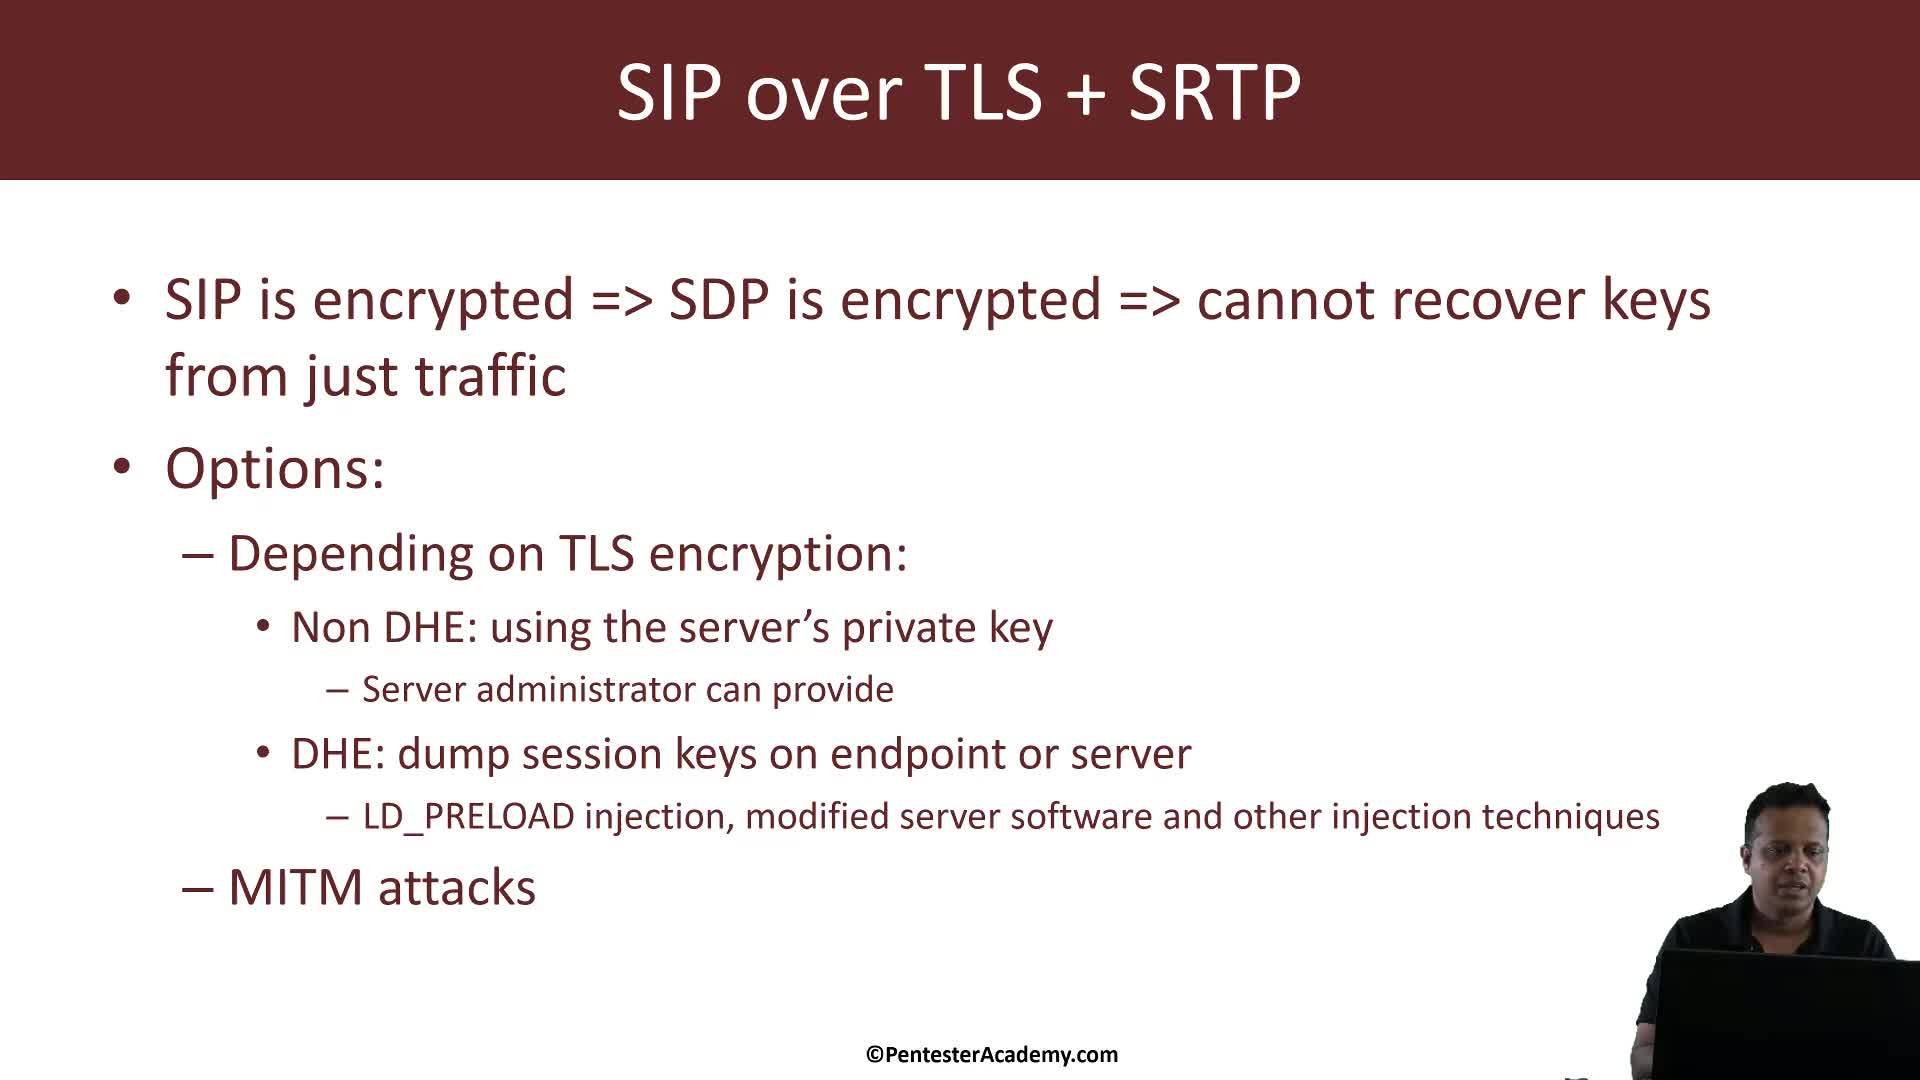 SIP over TLS + SRTP: Decrypting Voicemail